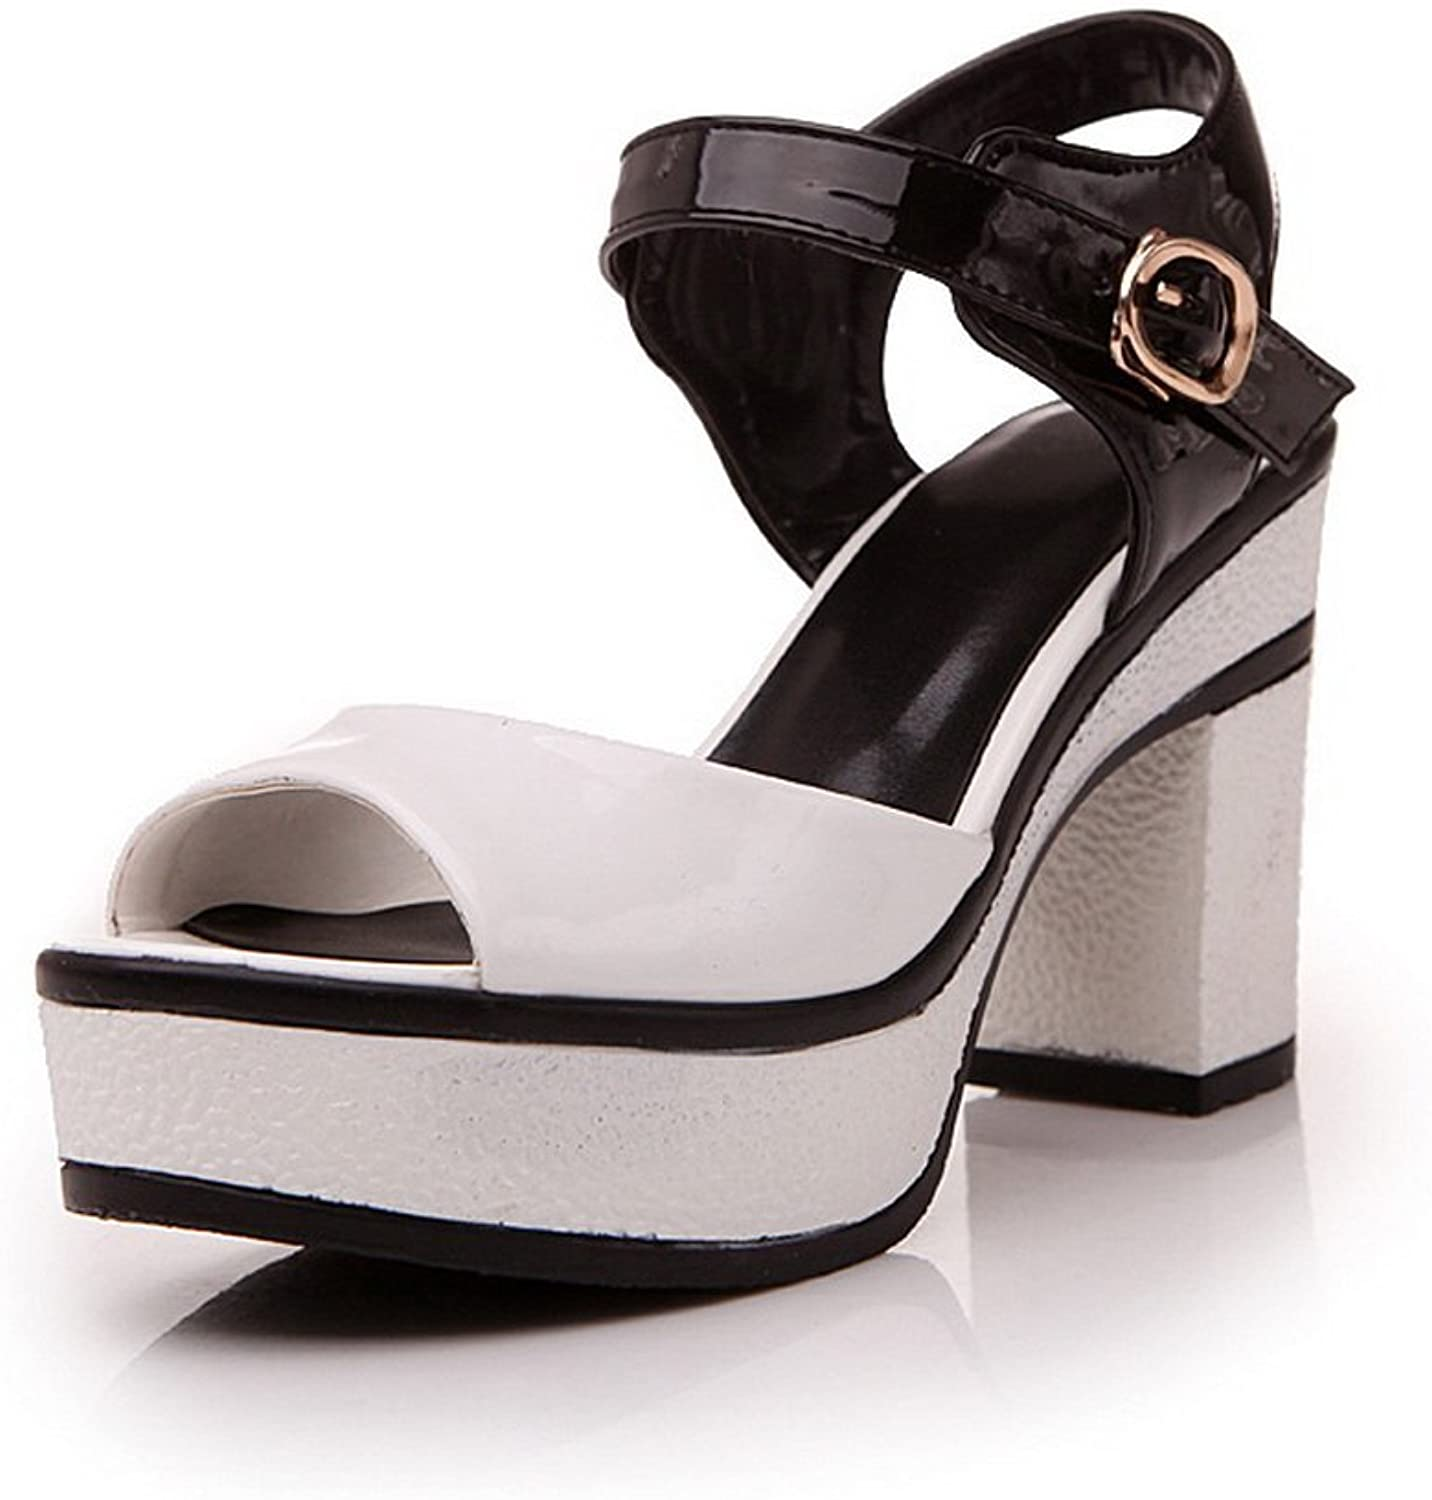 1TO9 Womens Metal Buckles Assorted color White Soft Material Sandals - 7.5 B(M) US